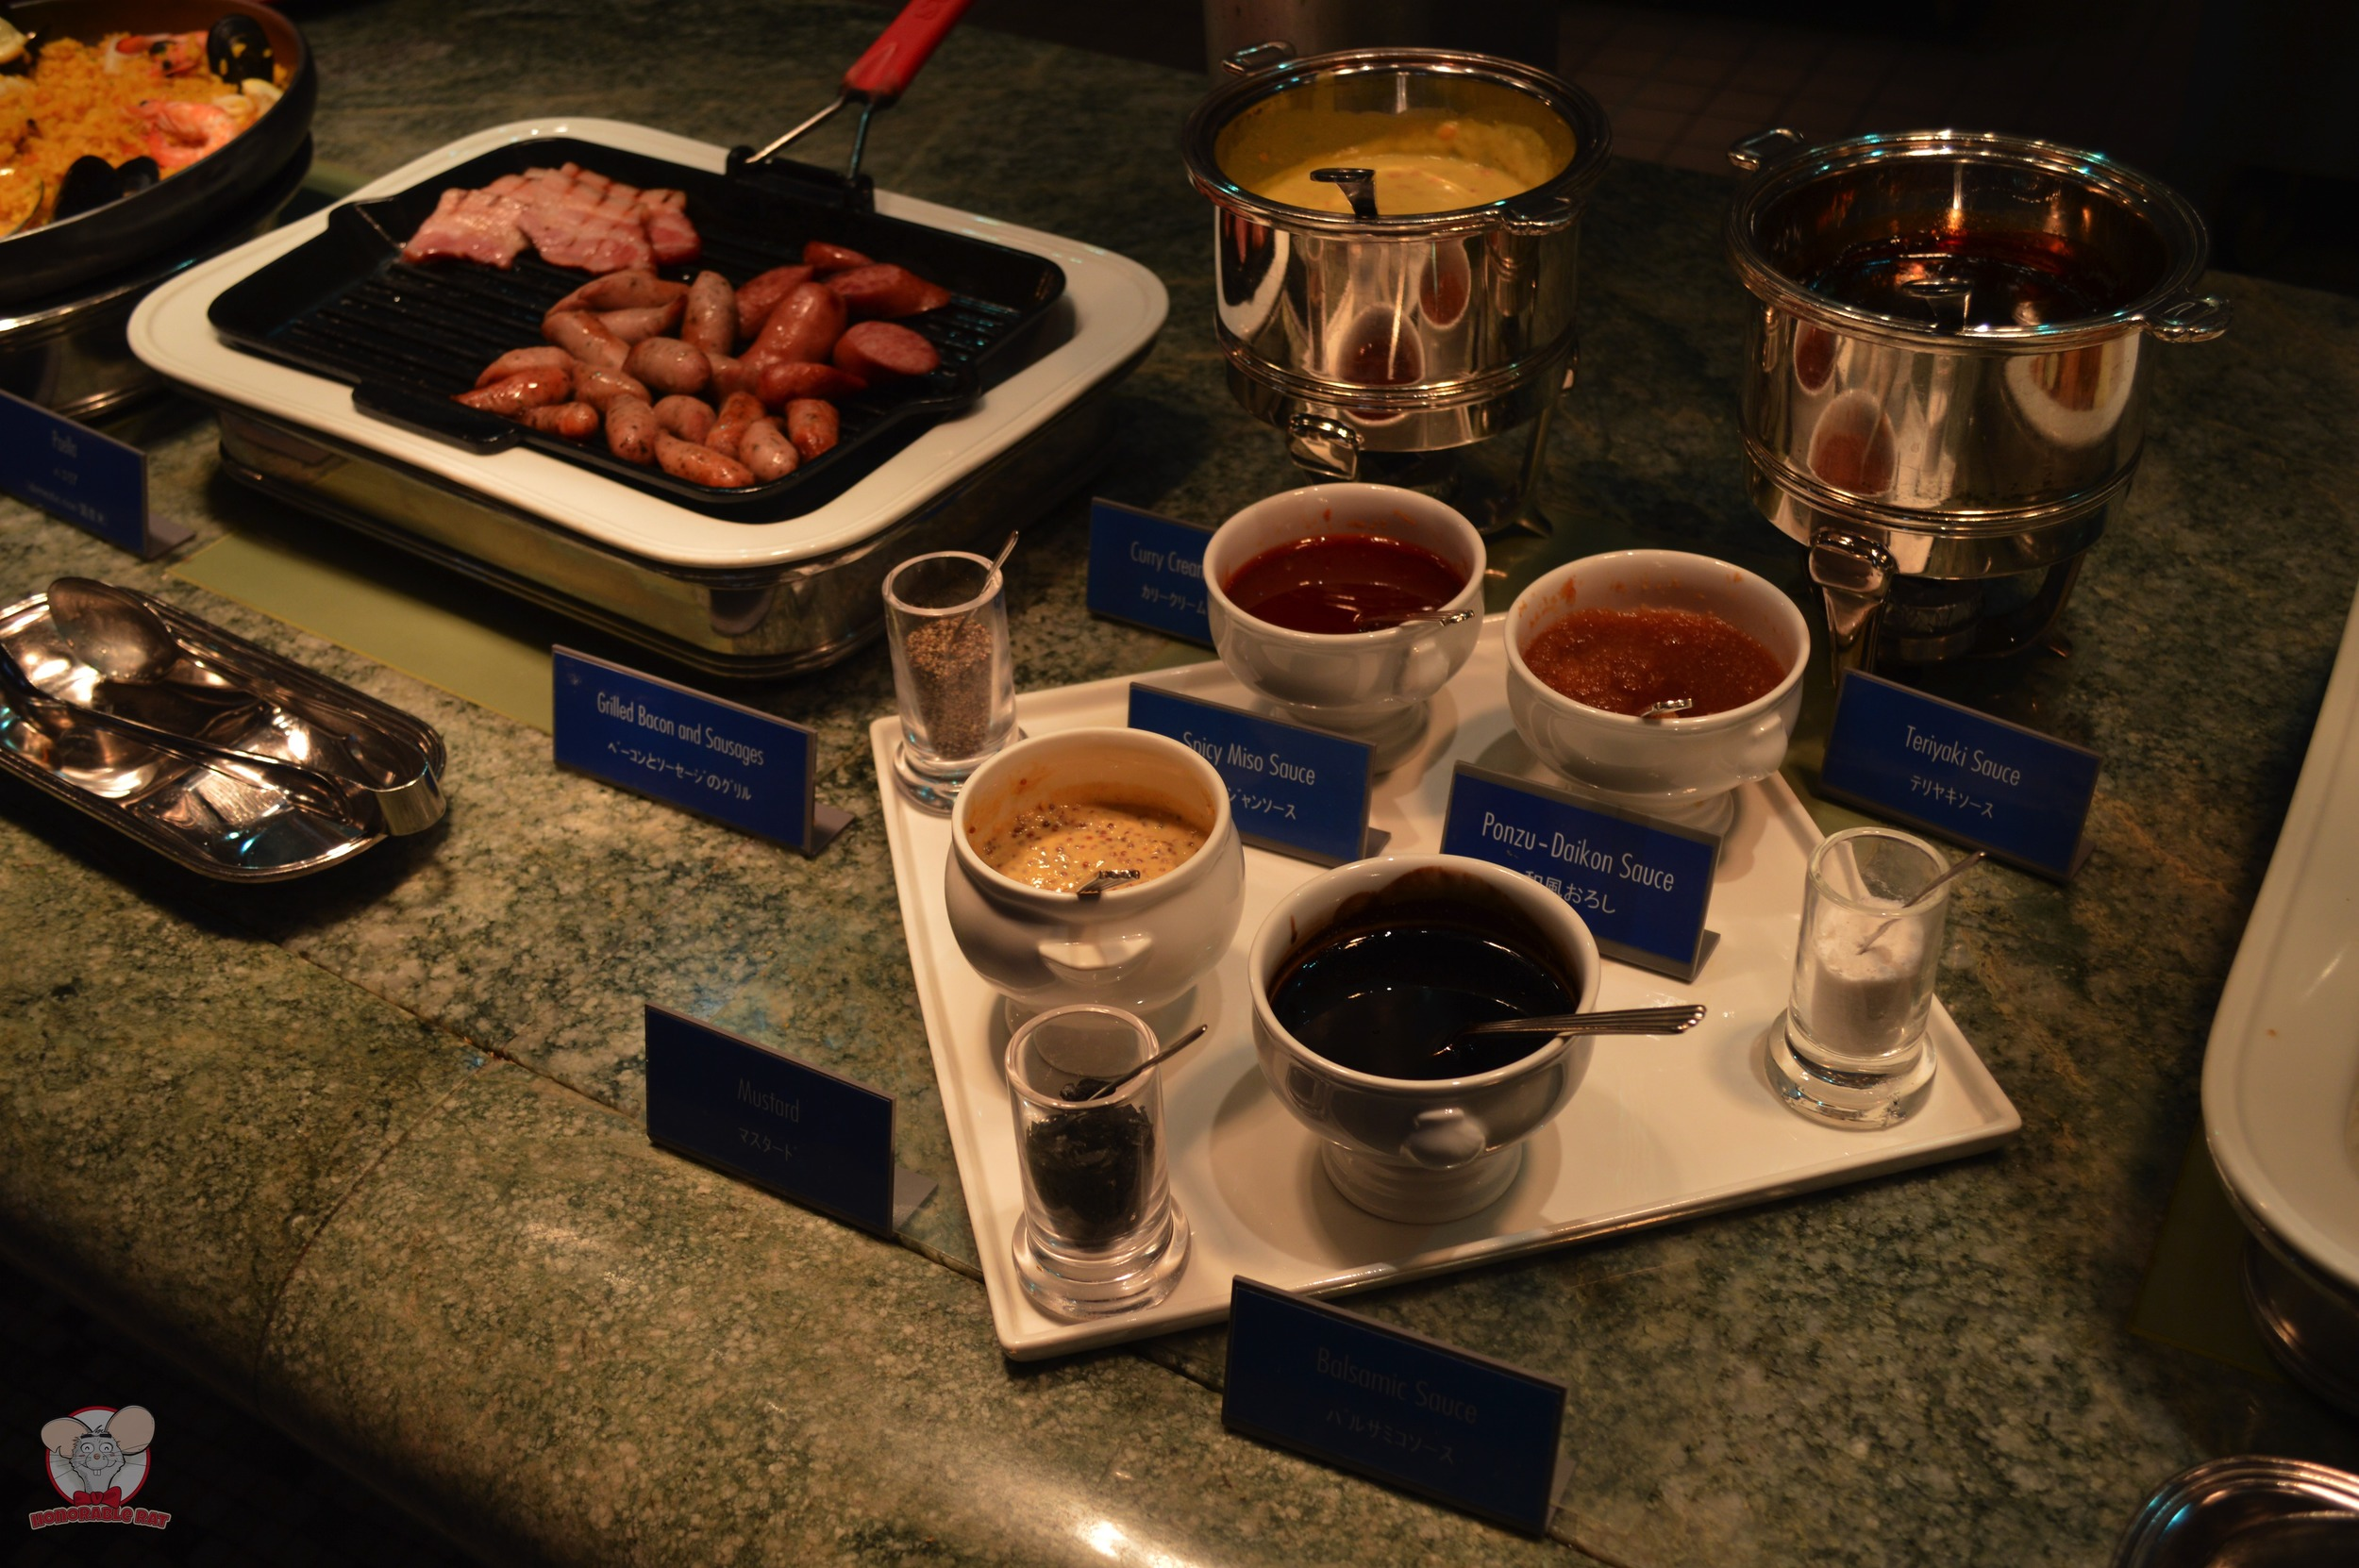 Grilled Bacon and Sausages (Left), Assortment of sauces (Right)